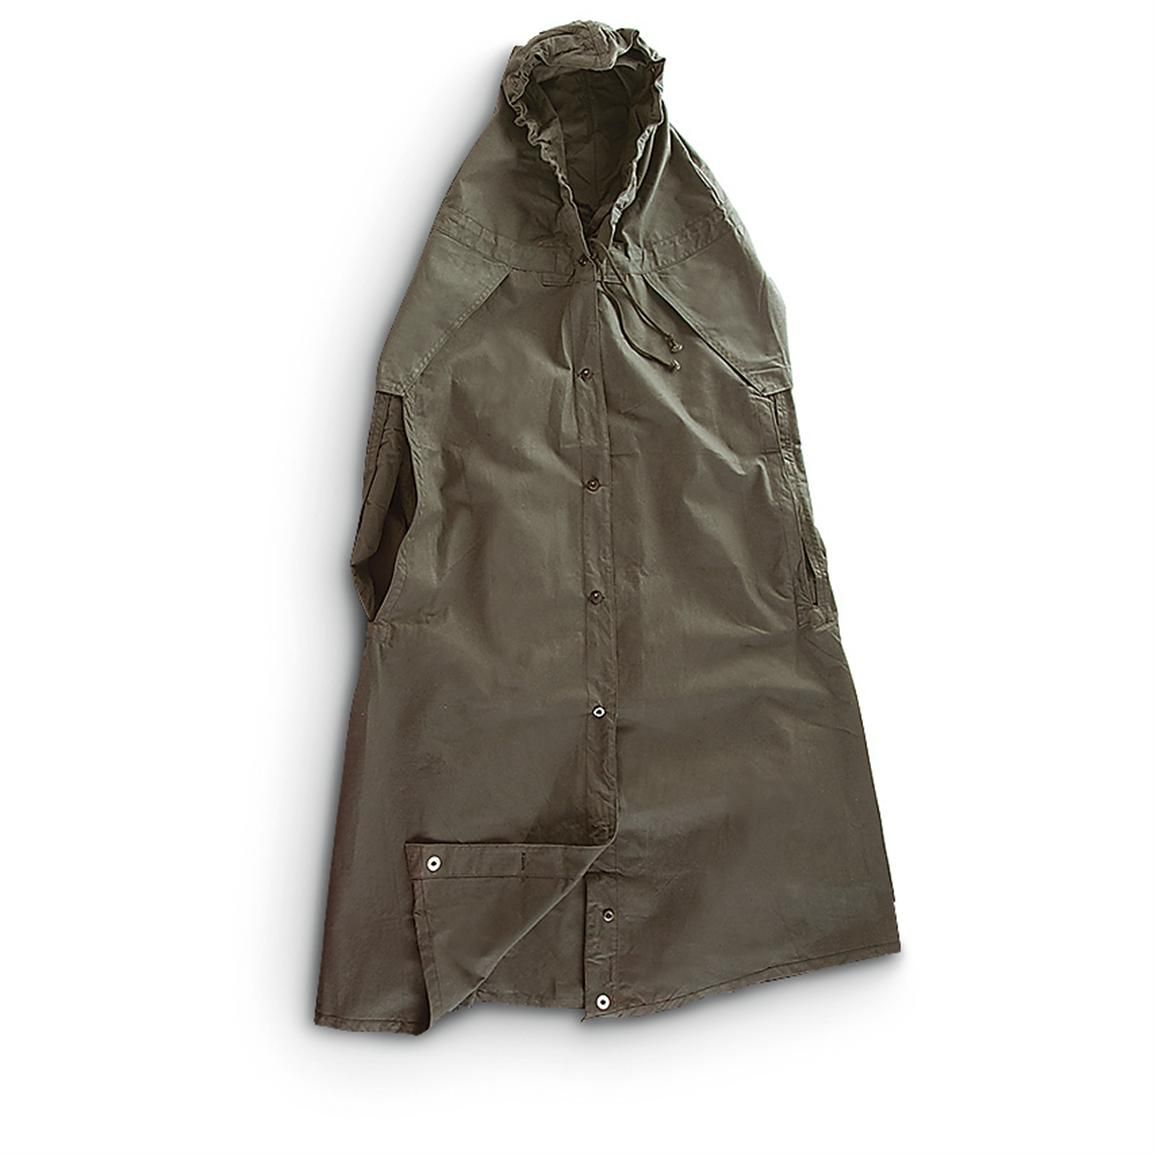 Sportsmanu0027s Guide has your 2 Used Russian Military Cavalry Ponchos Olive Drab available at a great price in our Rain Gear u0026 Ponchos collection  sc 1 st  Pinterest & Russian Cavalry Poncho Tent as poncho. | Apocalypse Bag ...